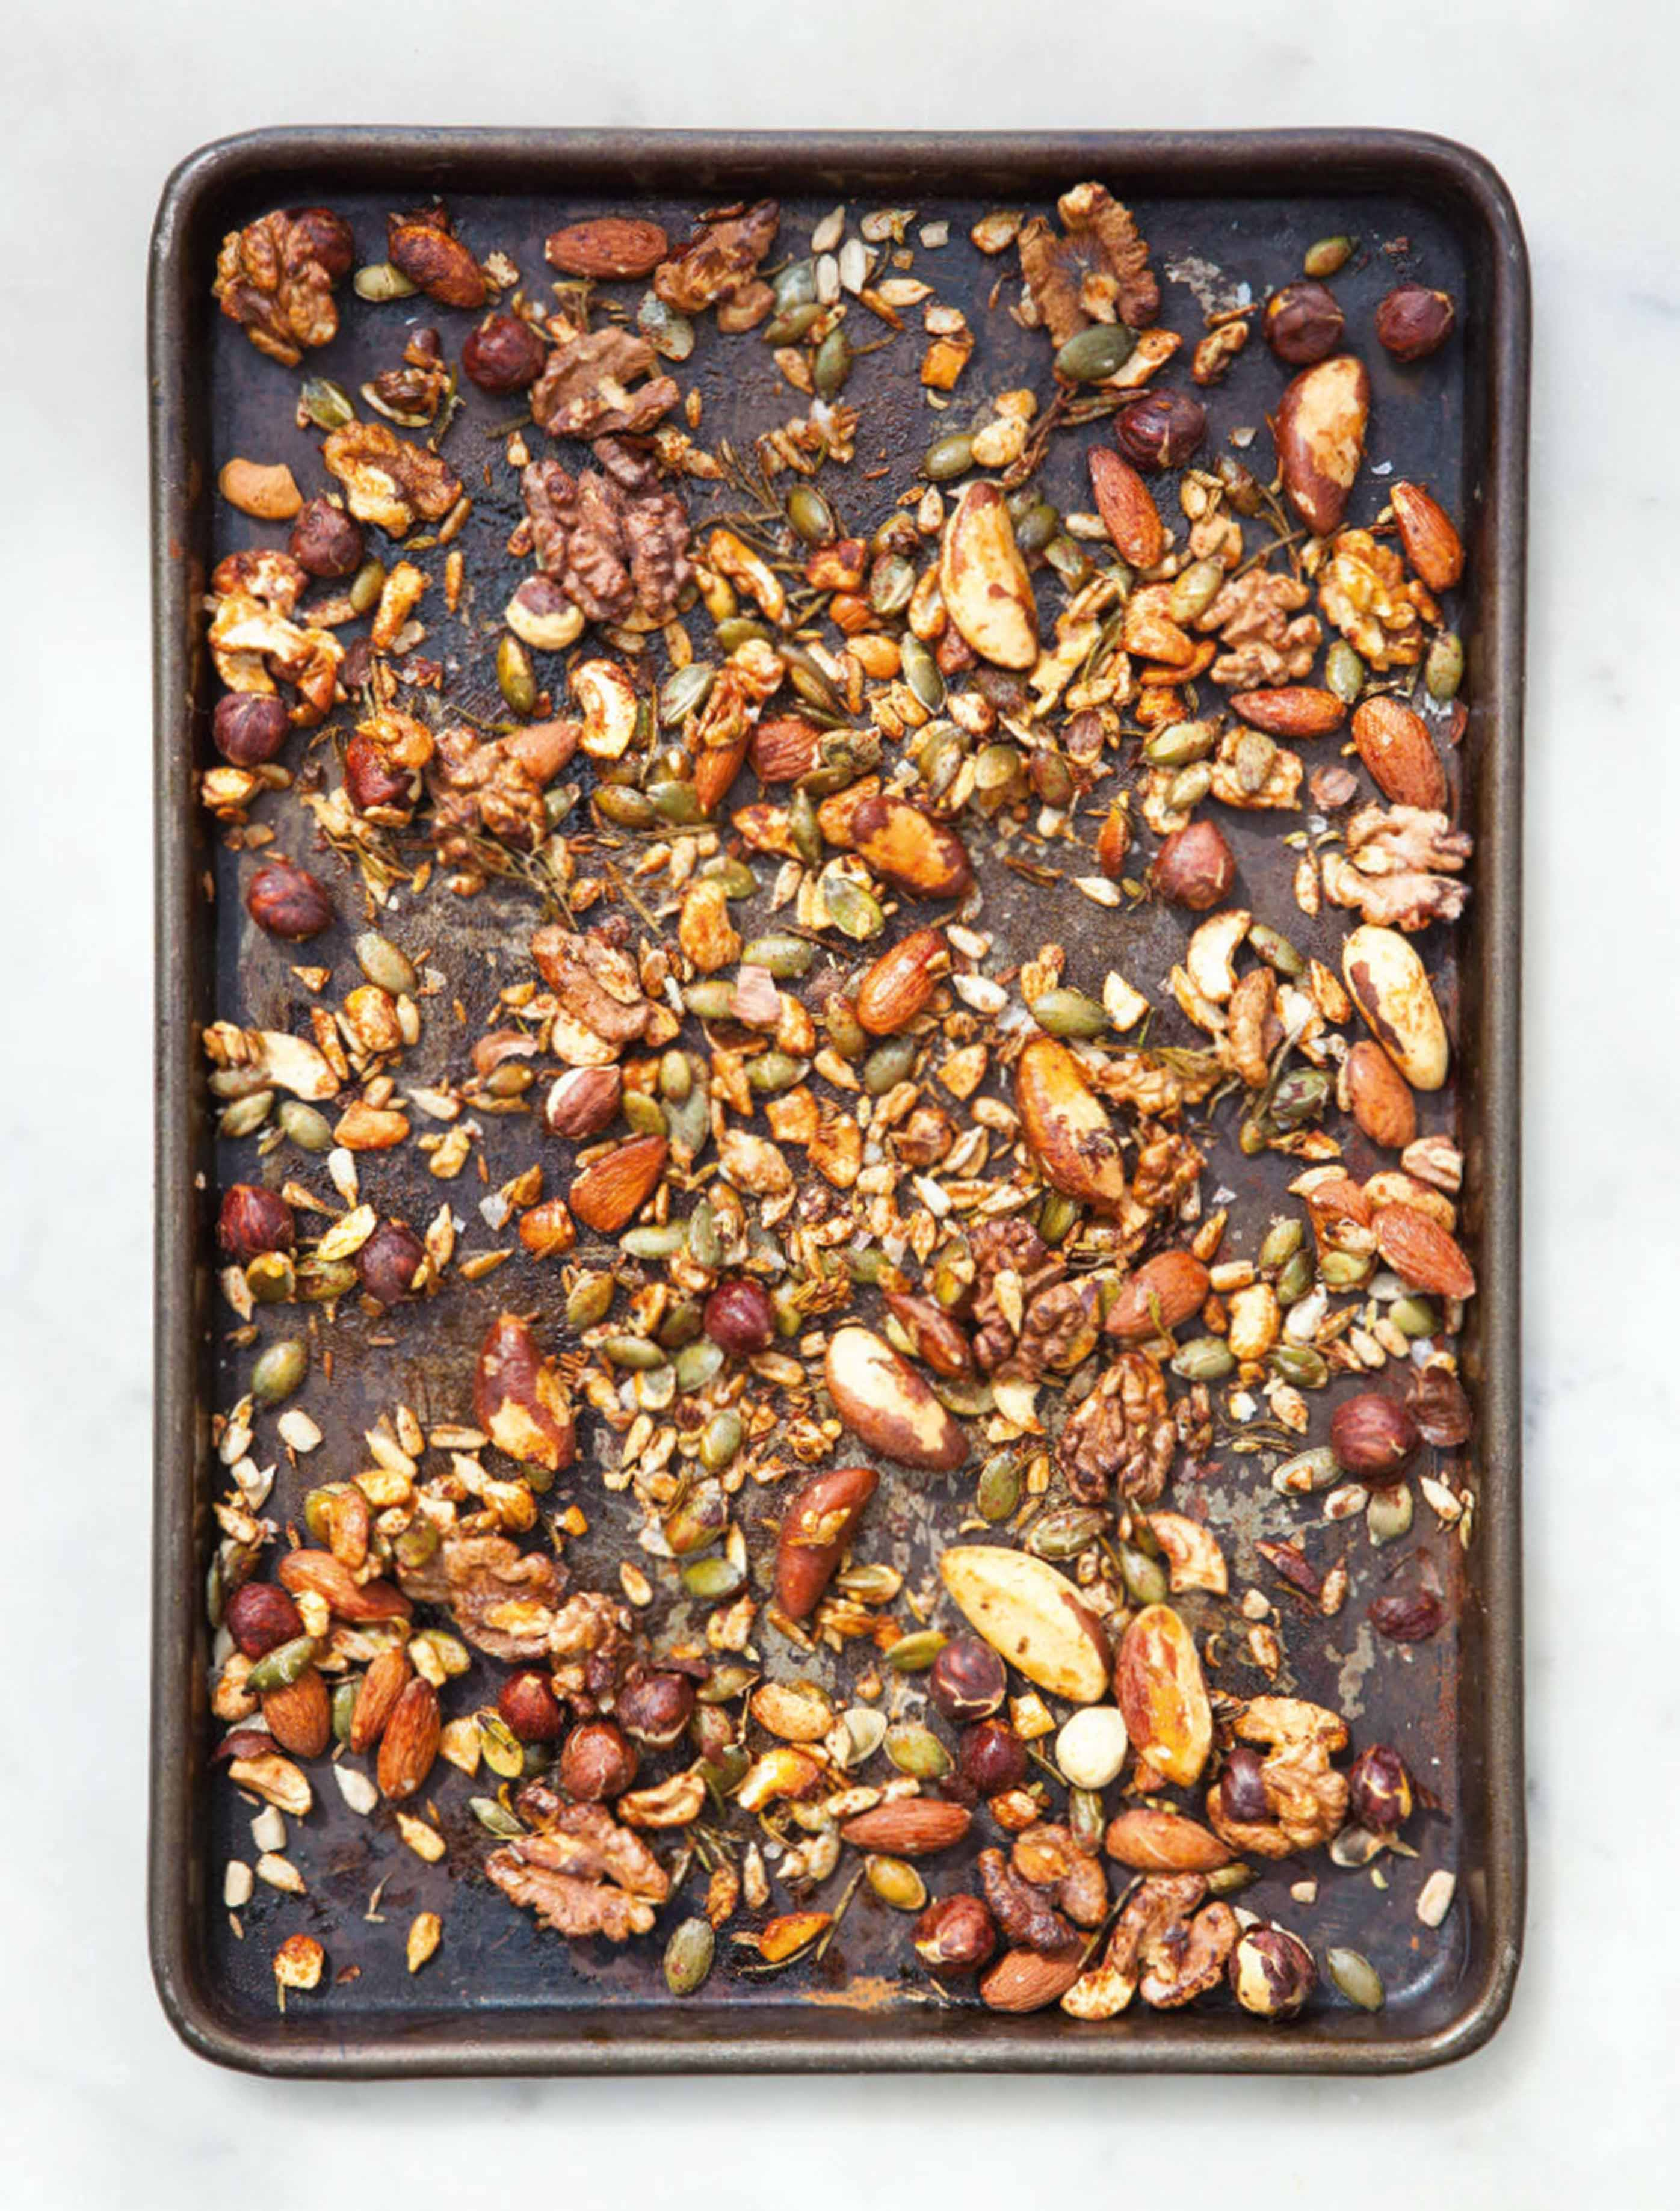 Spiced nuts and seeds